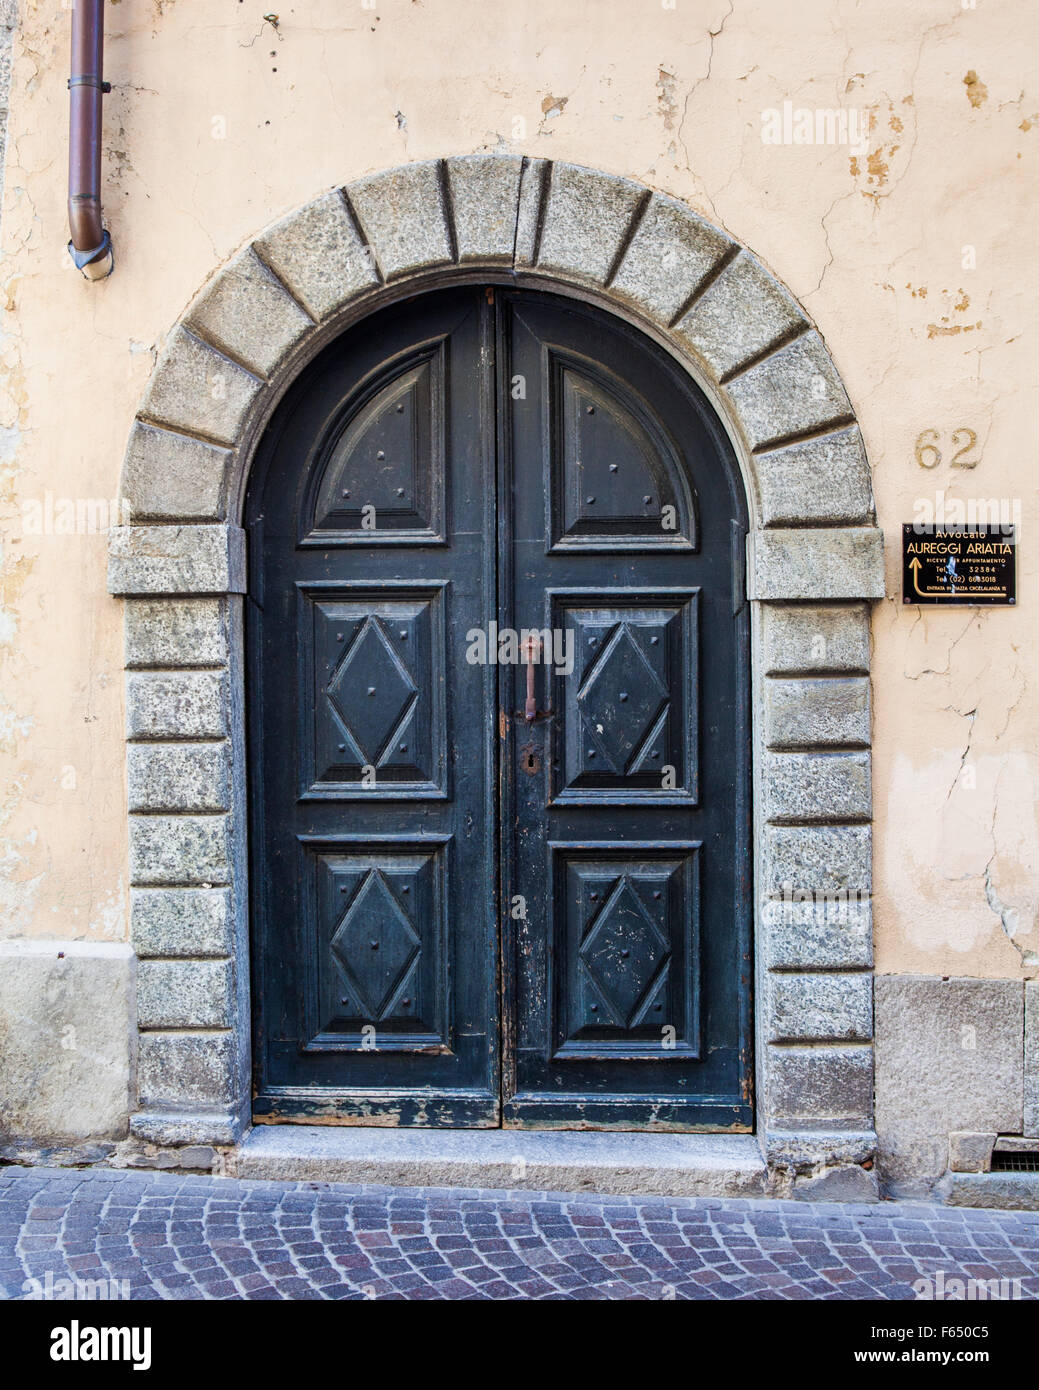 Italian doors & Italian doors Stock Photo: 89849877 - Alamy